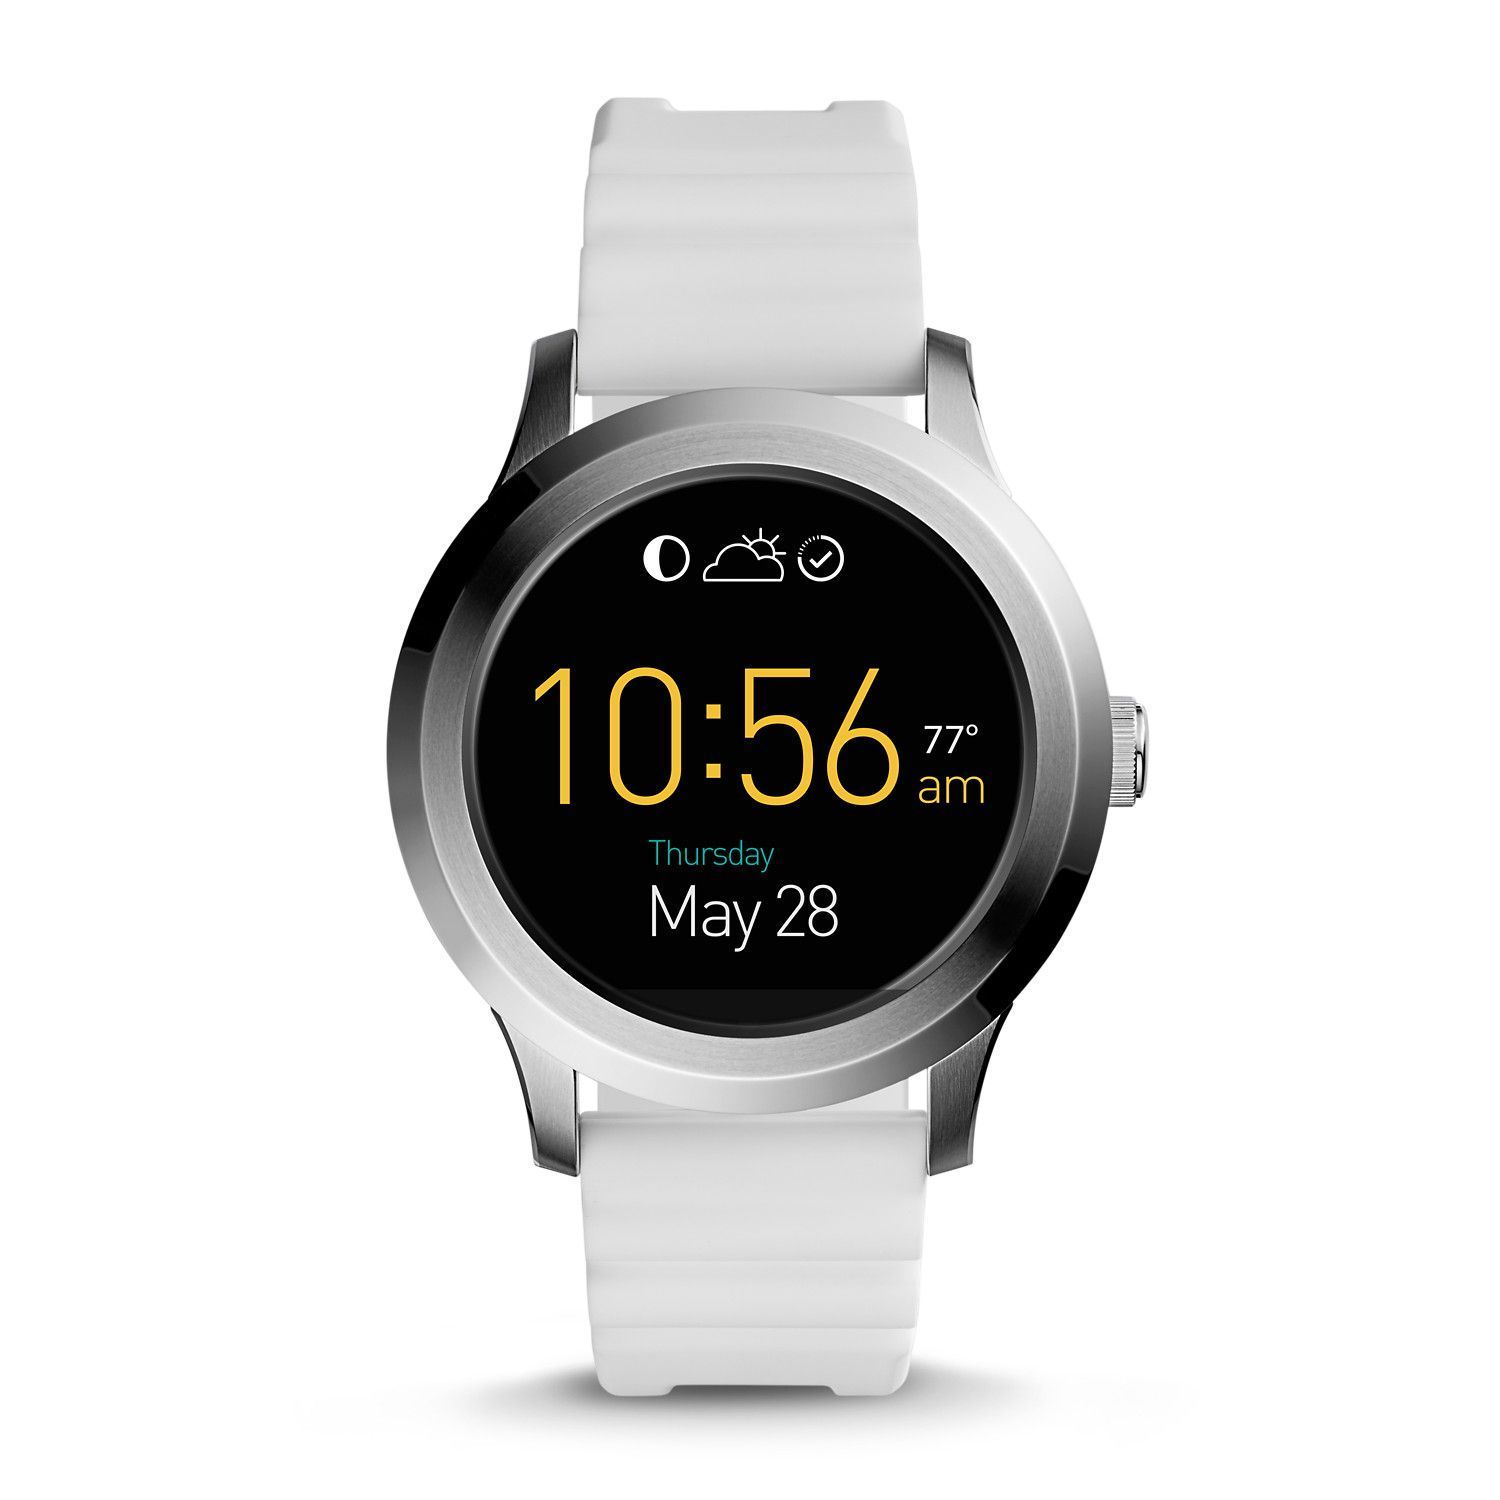 Fossil Q Fossil smart watch, Smart watch, Swiss army watches